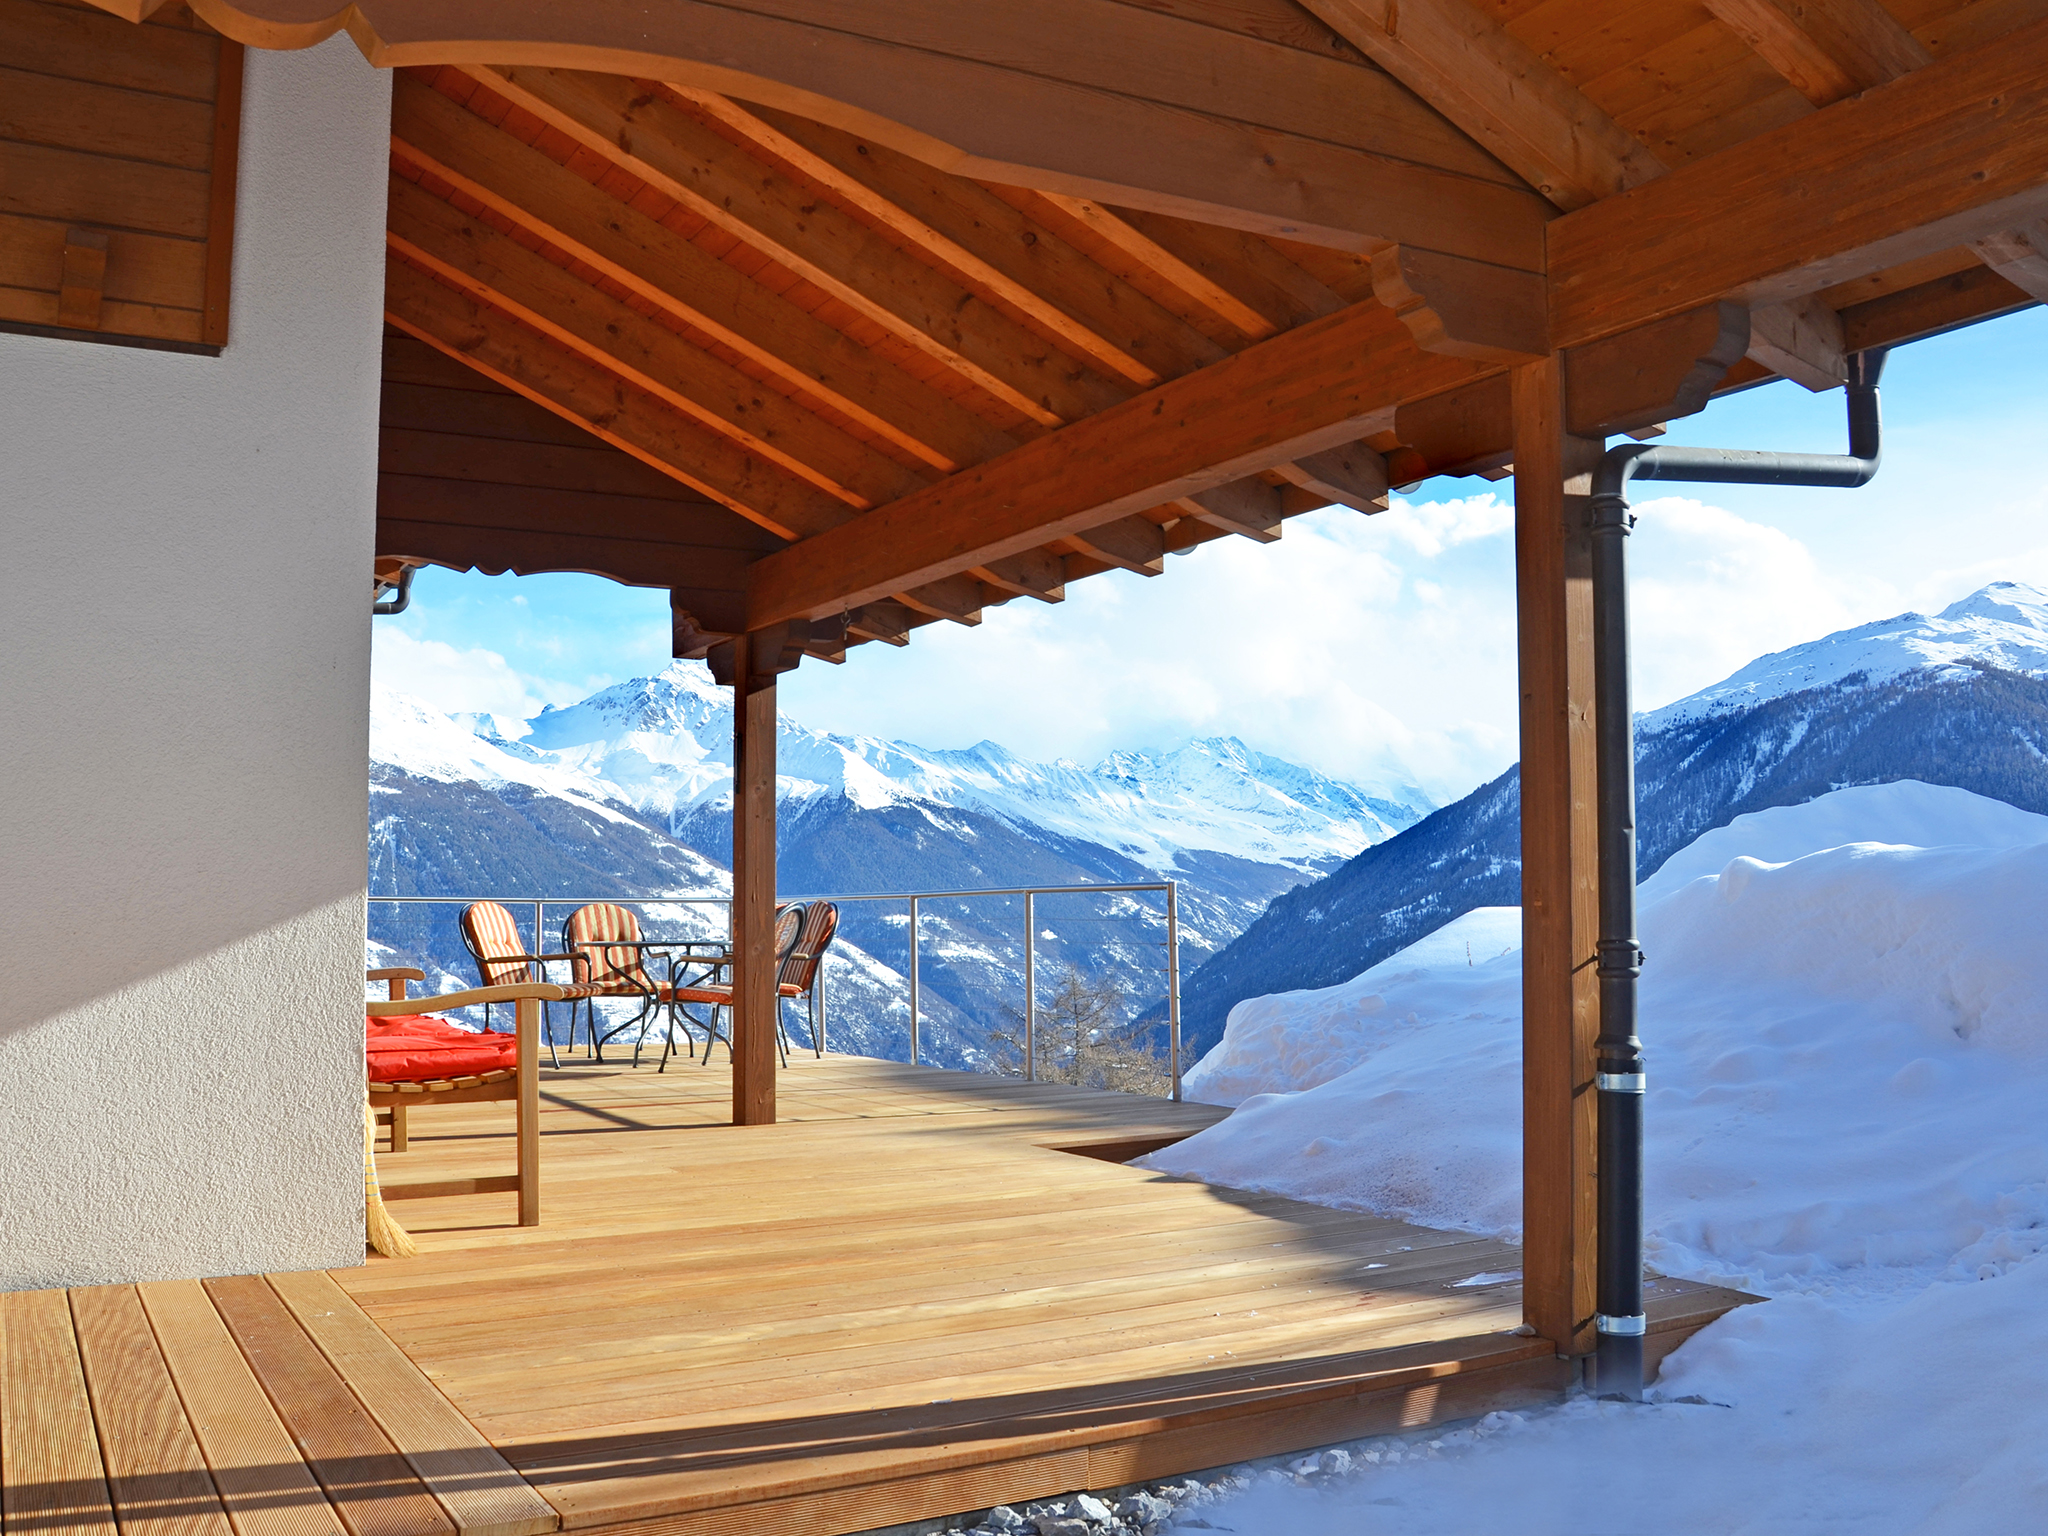 Chalet Magic Mountain - panoramic view